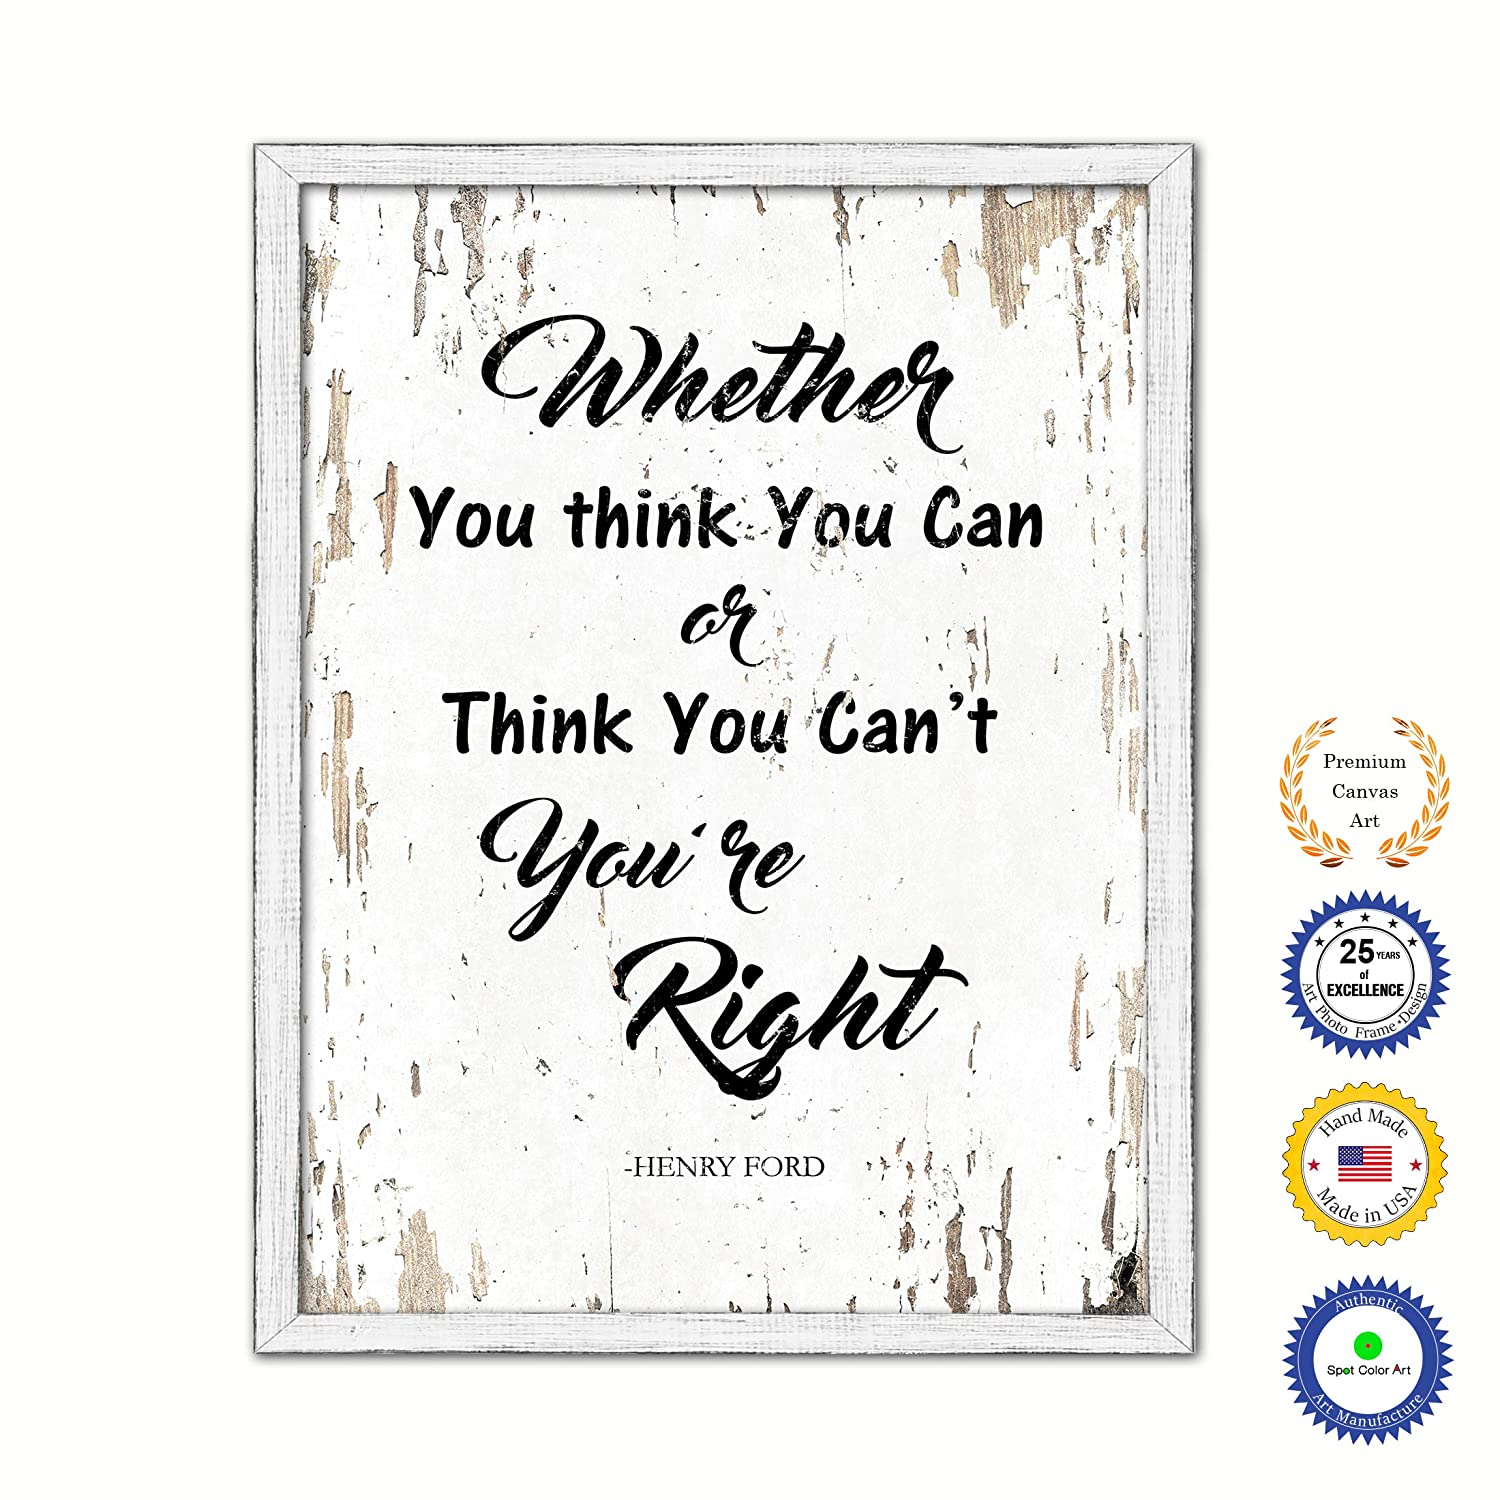 SpotColorArt Whether You Think You Can Or Cant Youre Right Framed Canvas Art 22 x 29 White Spot Color Art QUOTEBEACH131-111393WH2229B